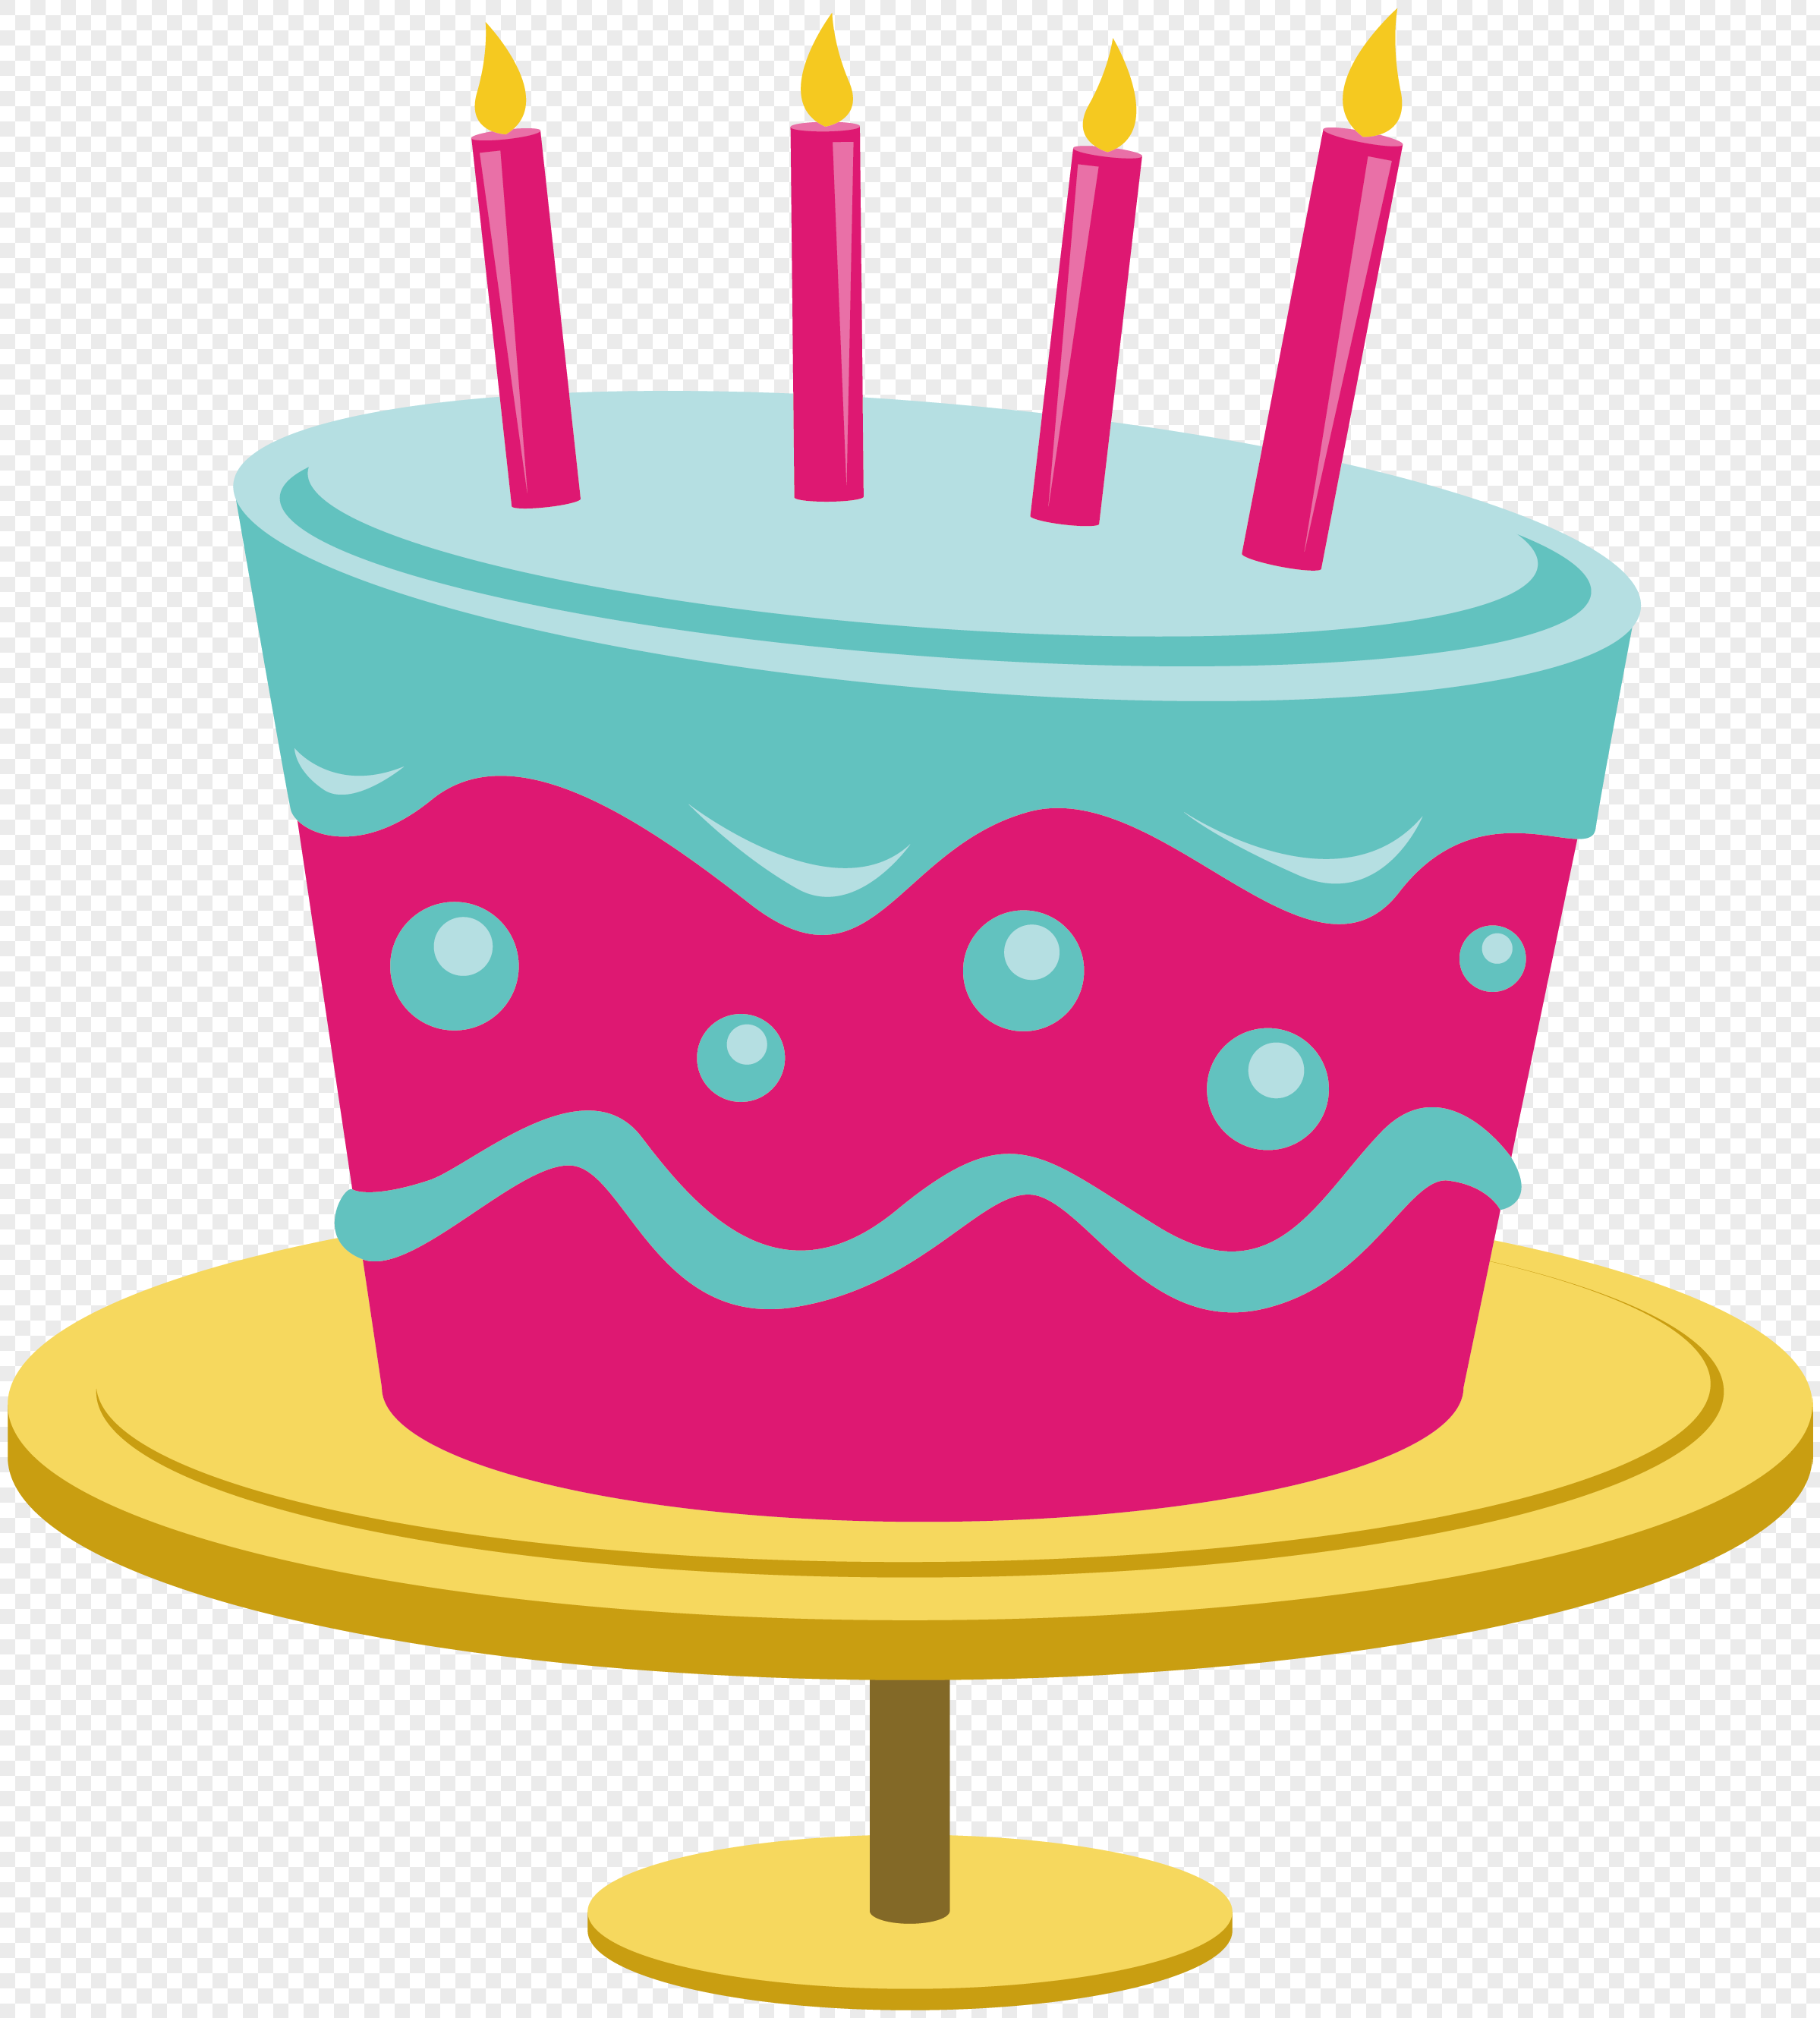 2398x2659 Cartoon Birthday Cake Vector Material Png Image Picture Free